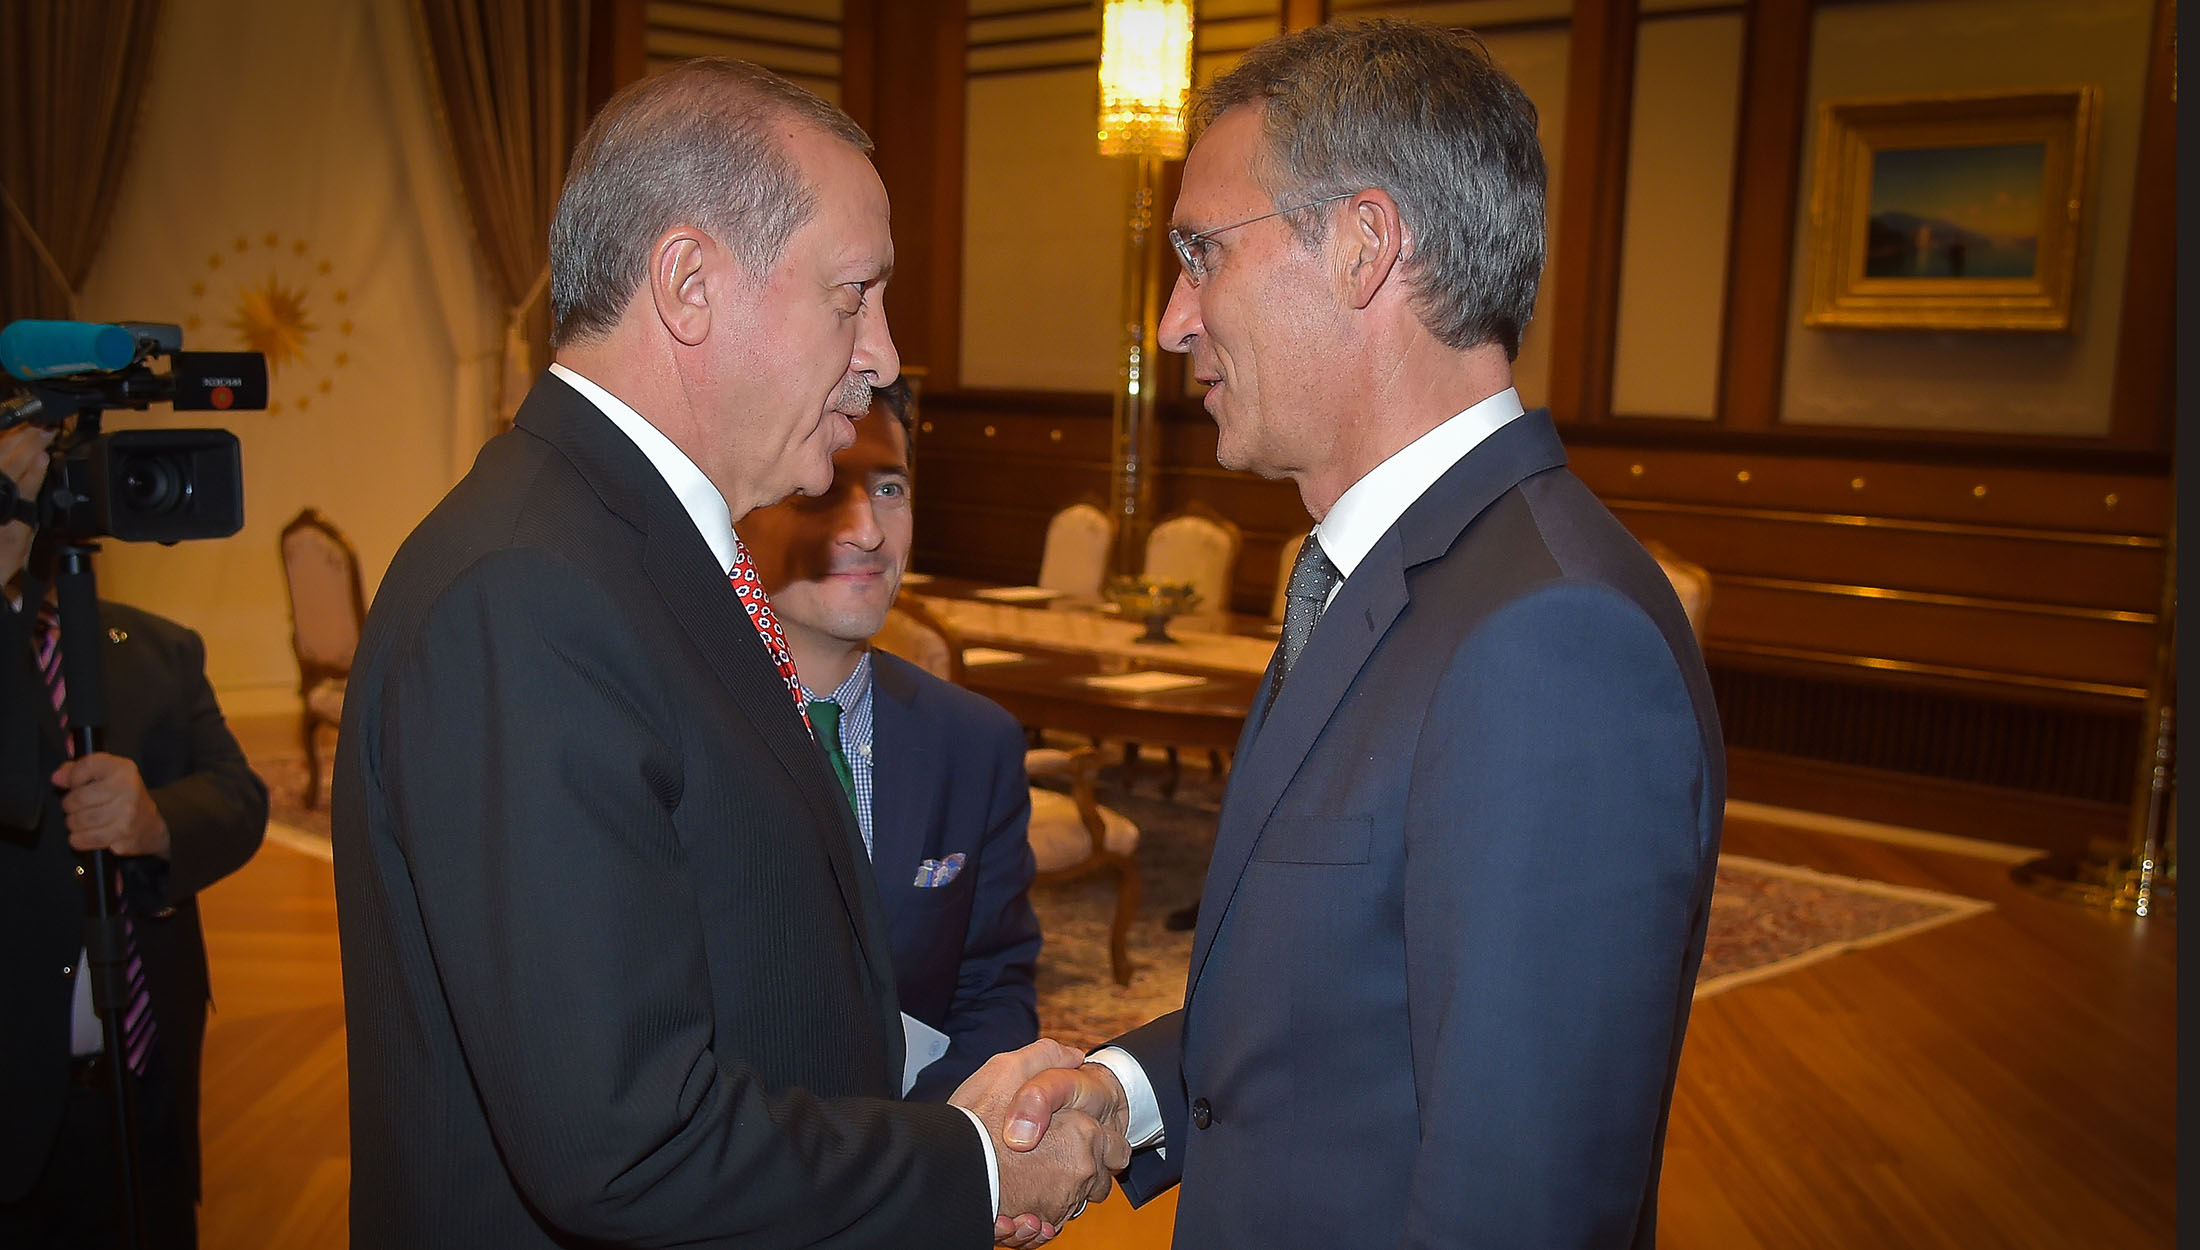 NATO Secretary General Jens Stoltenberg meets with the President of Turkey, Recep Tayyip Erdogan September 8, 2016. Photo: NATO